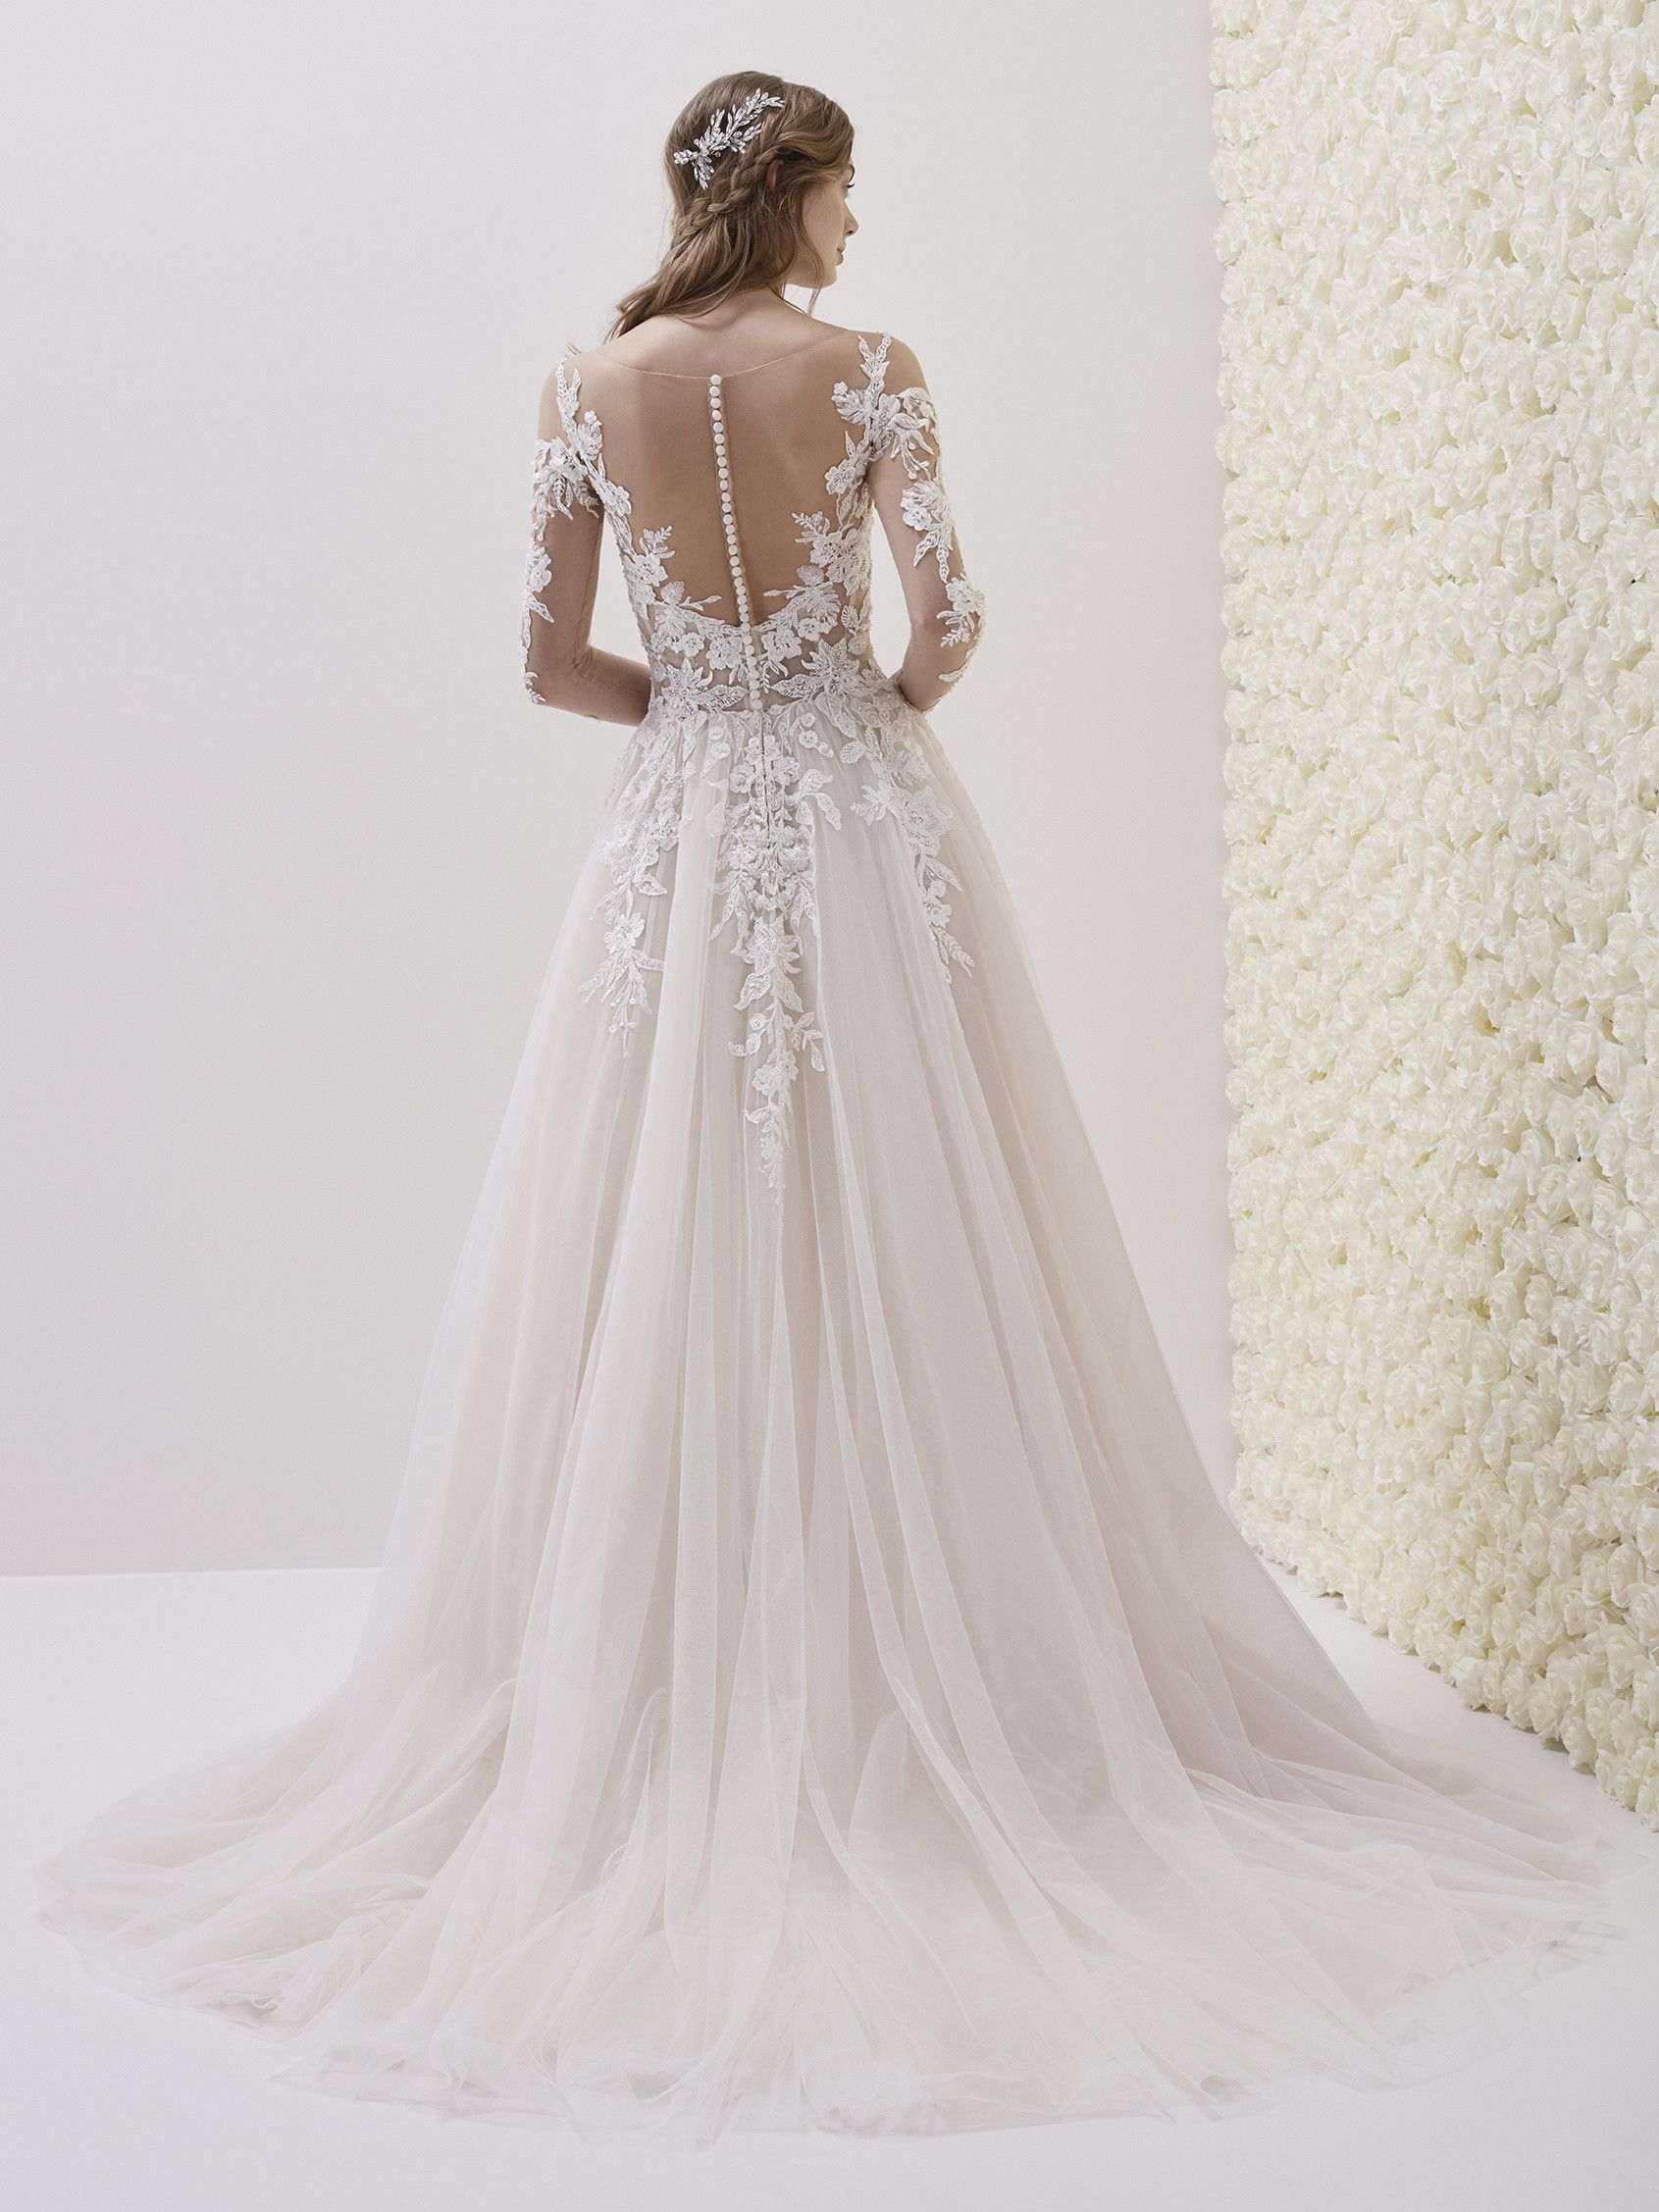 Pronovias Emelina Illusion Neckline Wedding Dress Wedding Dresses